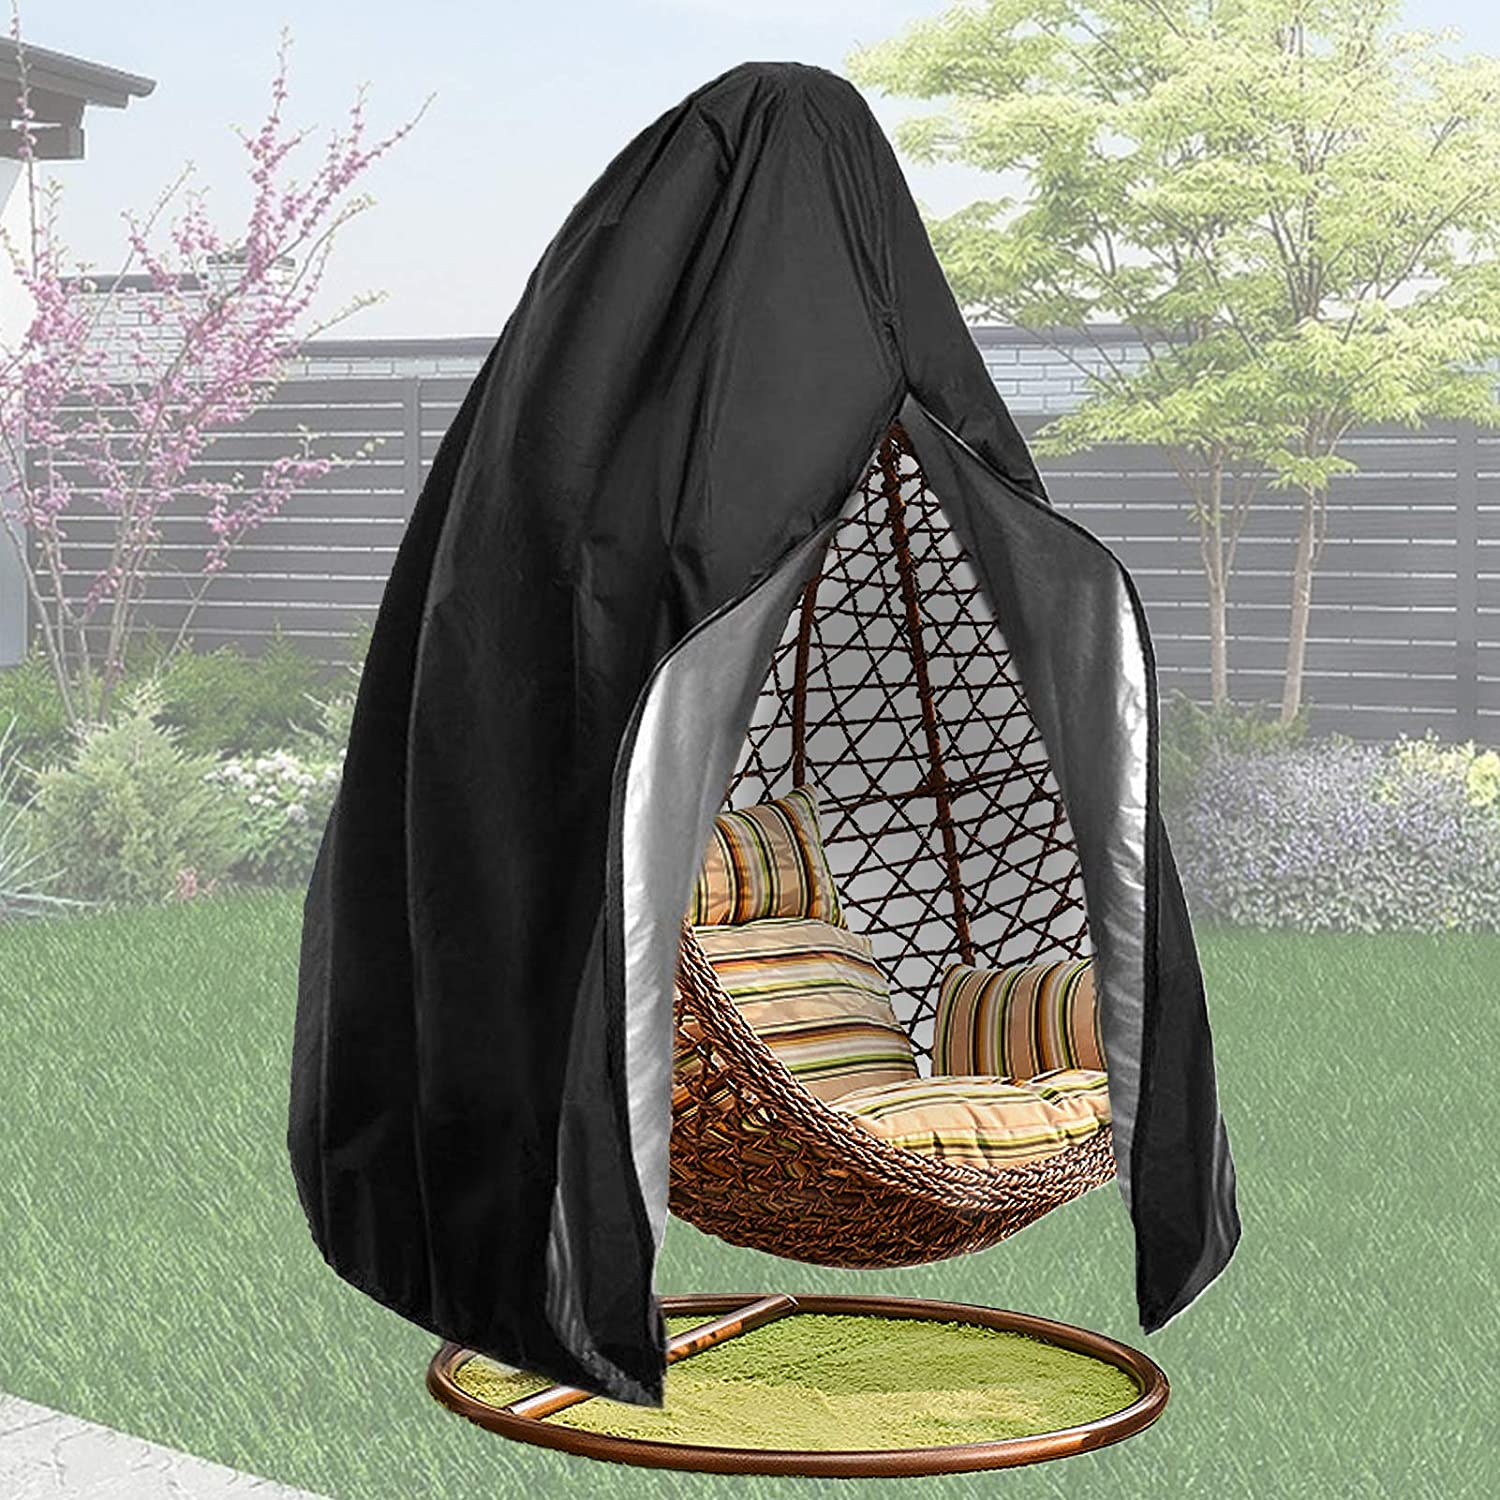 Patio Hanging Arlington Mall Egg Chair Cover with Waterproof Wi Outdoor Zipper- Recommendation